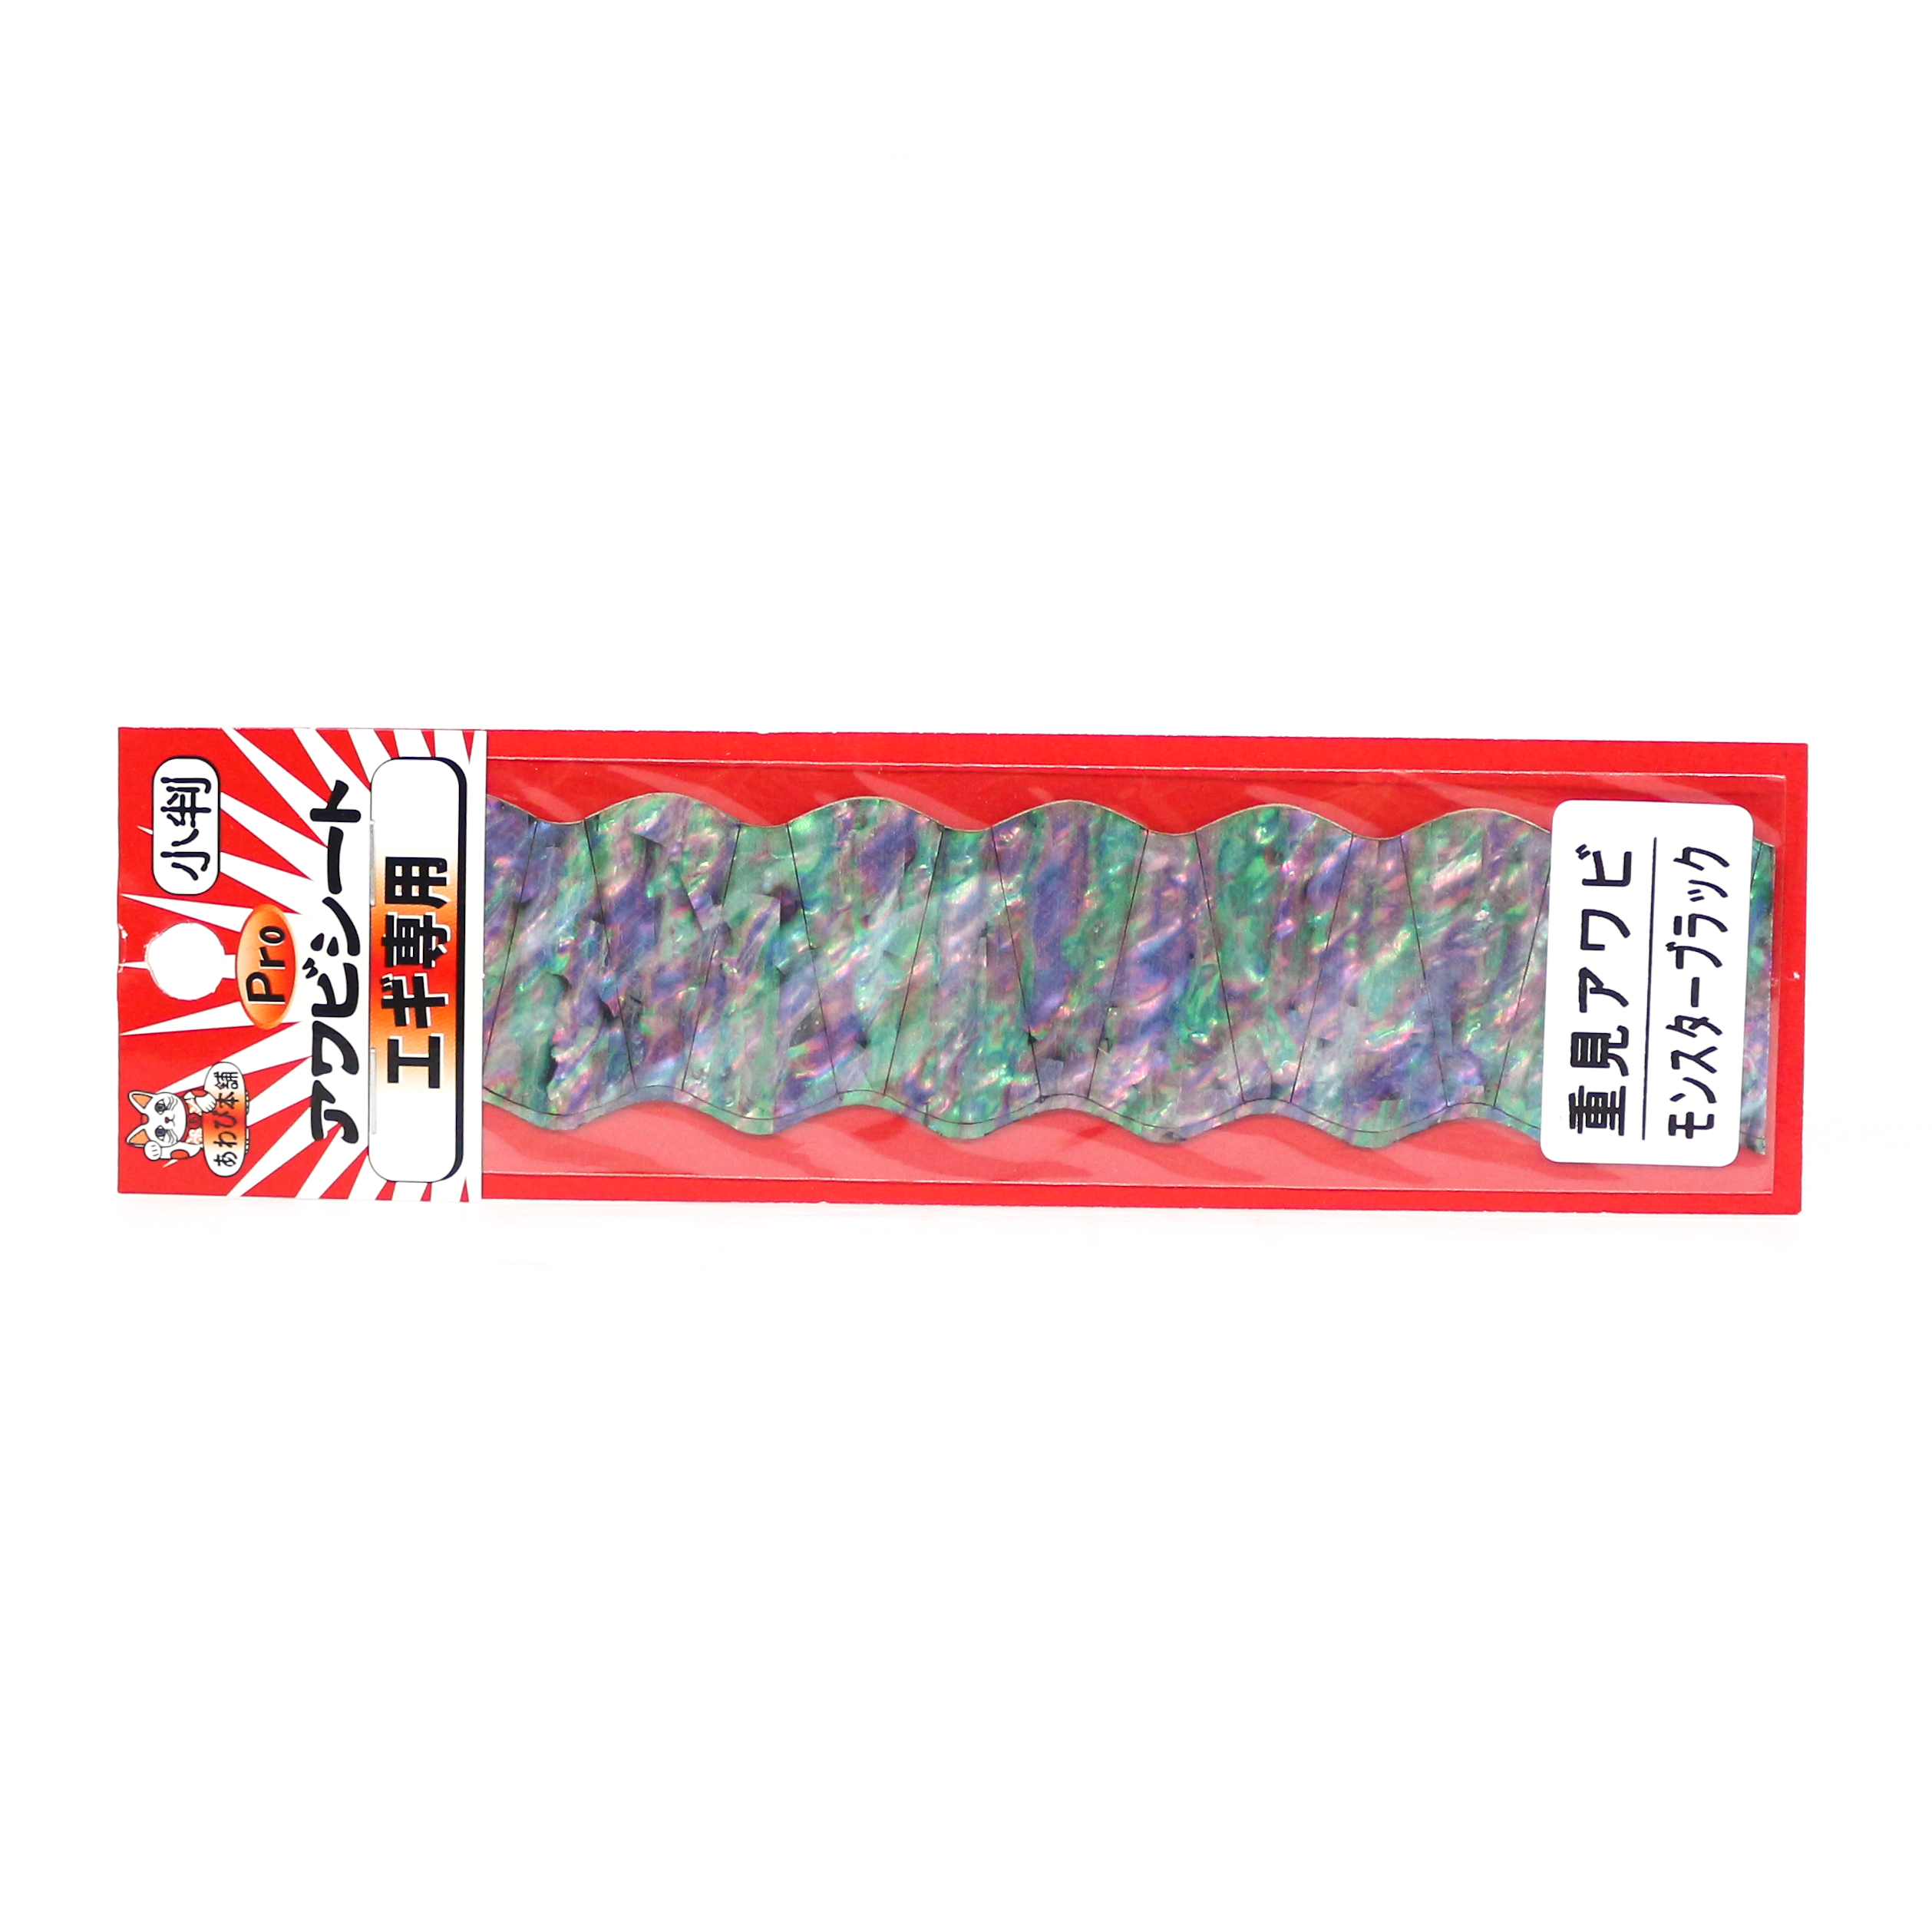 Awabi Honpo Pro Awabi Sheet Shigemi Size S 40 x 140 mm Monster Black (3122)